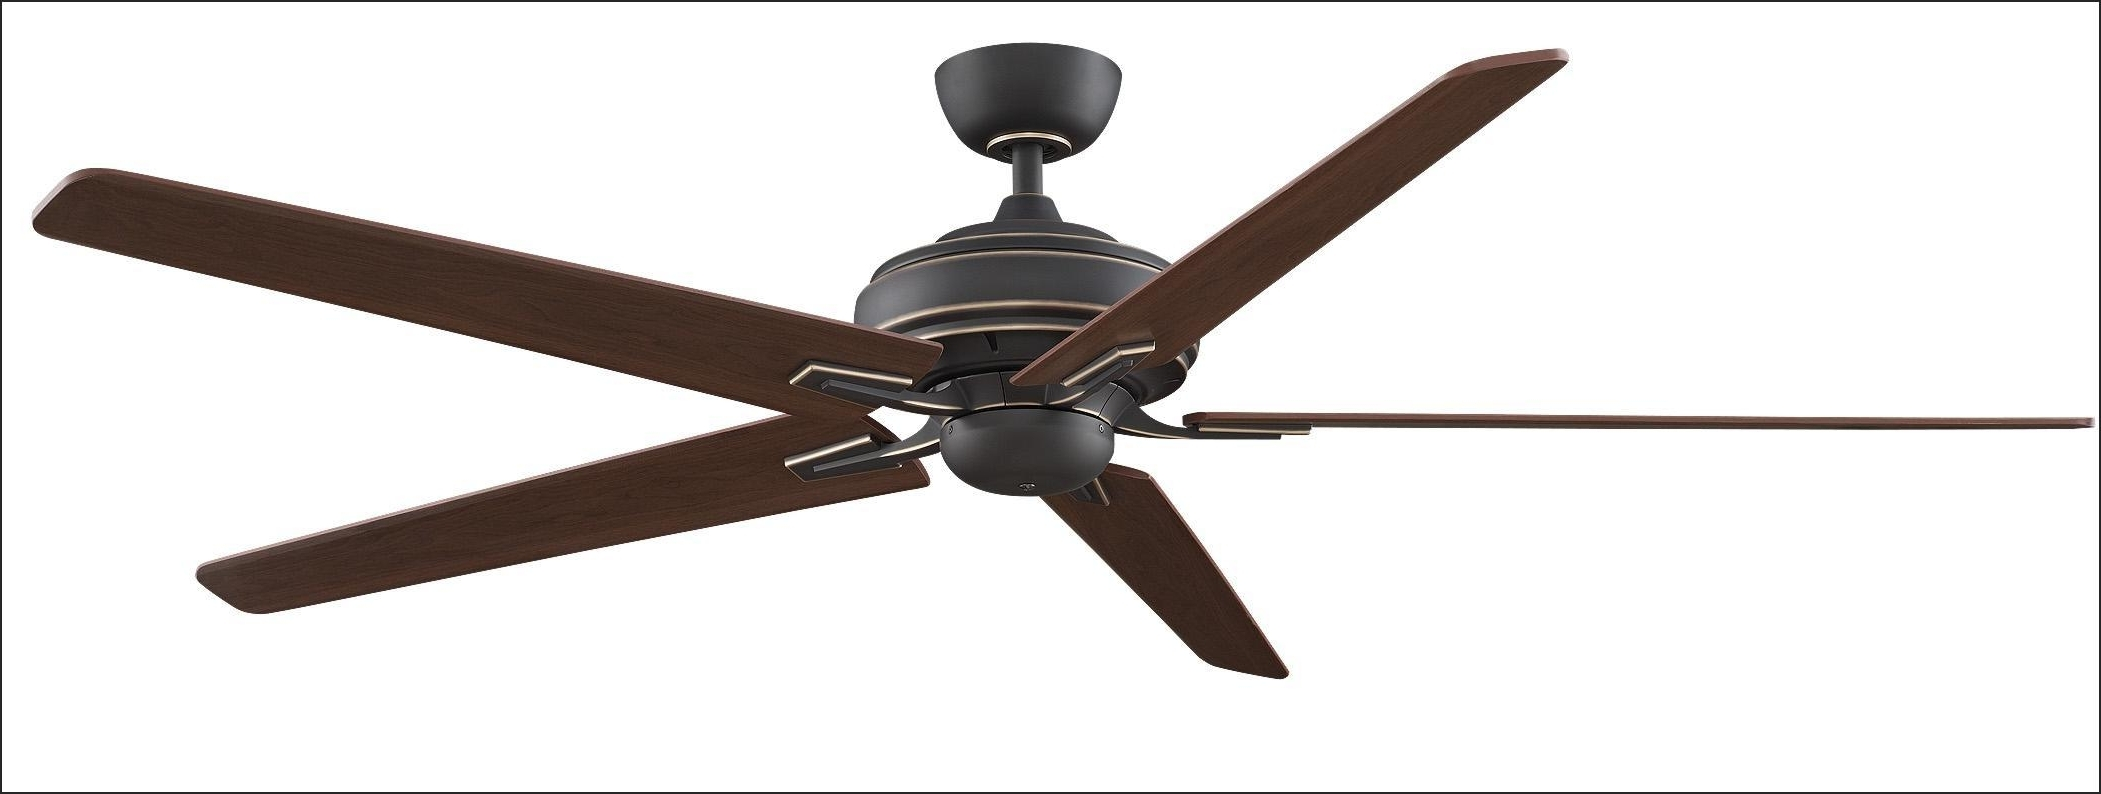 Furniture : Bronze Ceiling Fan Best Of 60 Ceiling Fans Without With Regard To Latest Outdoor Ceiling Fans Without Lights (View 4 of 20)